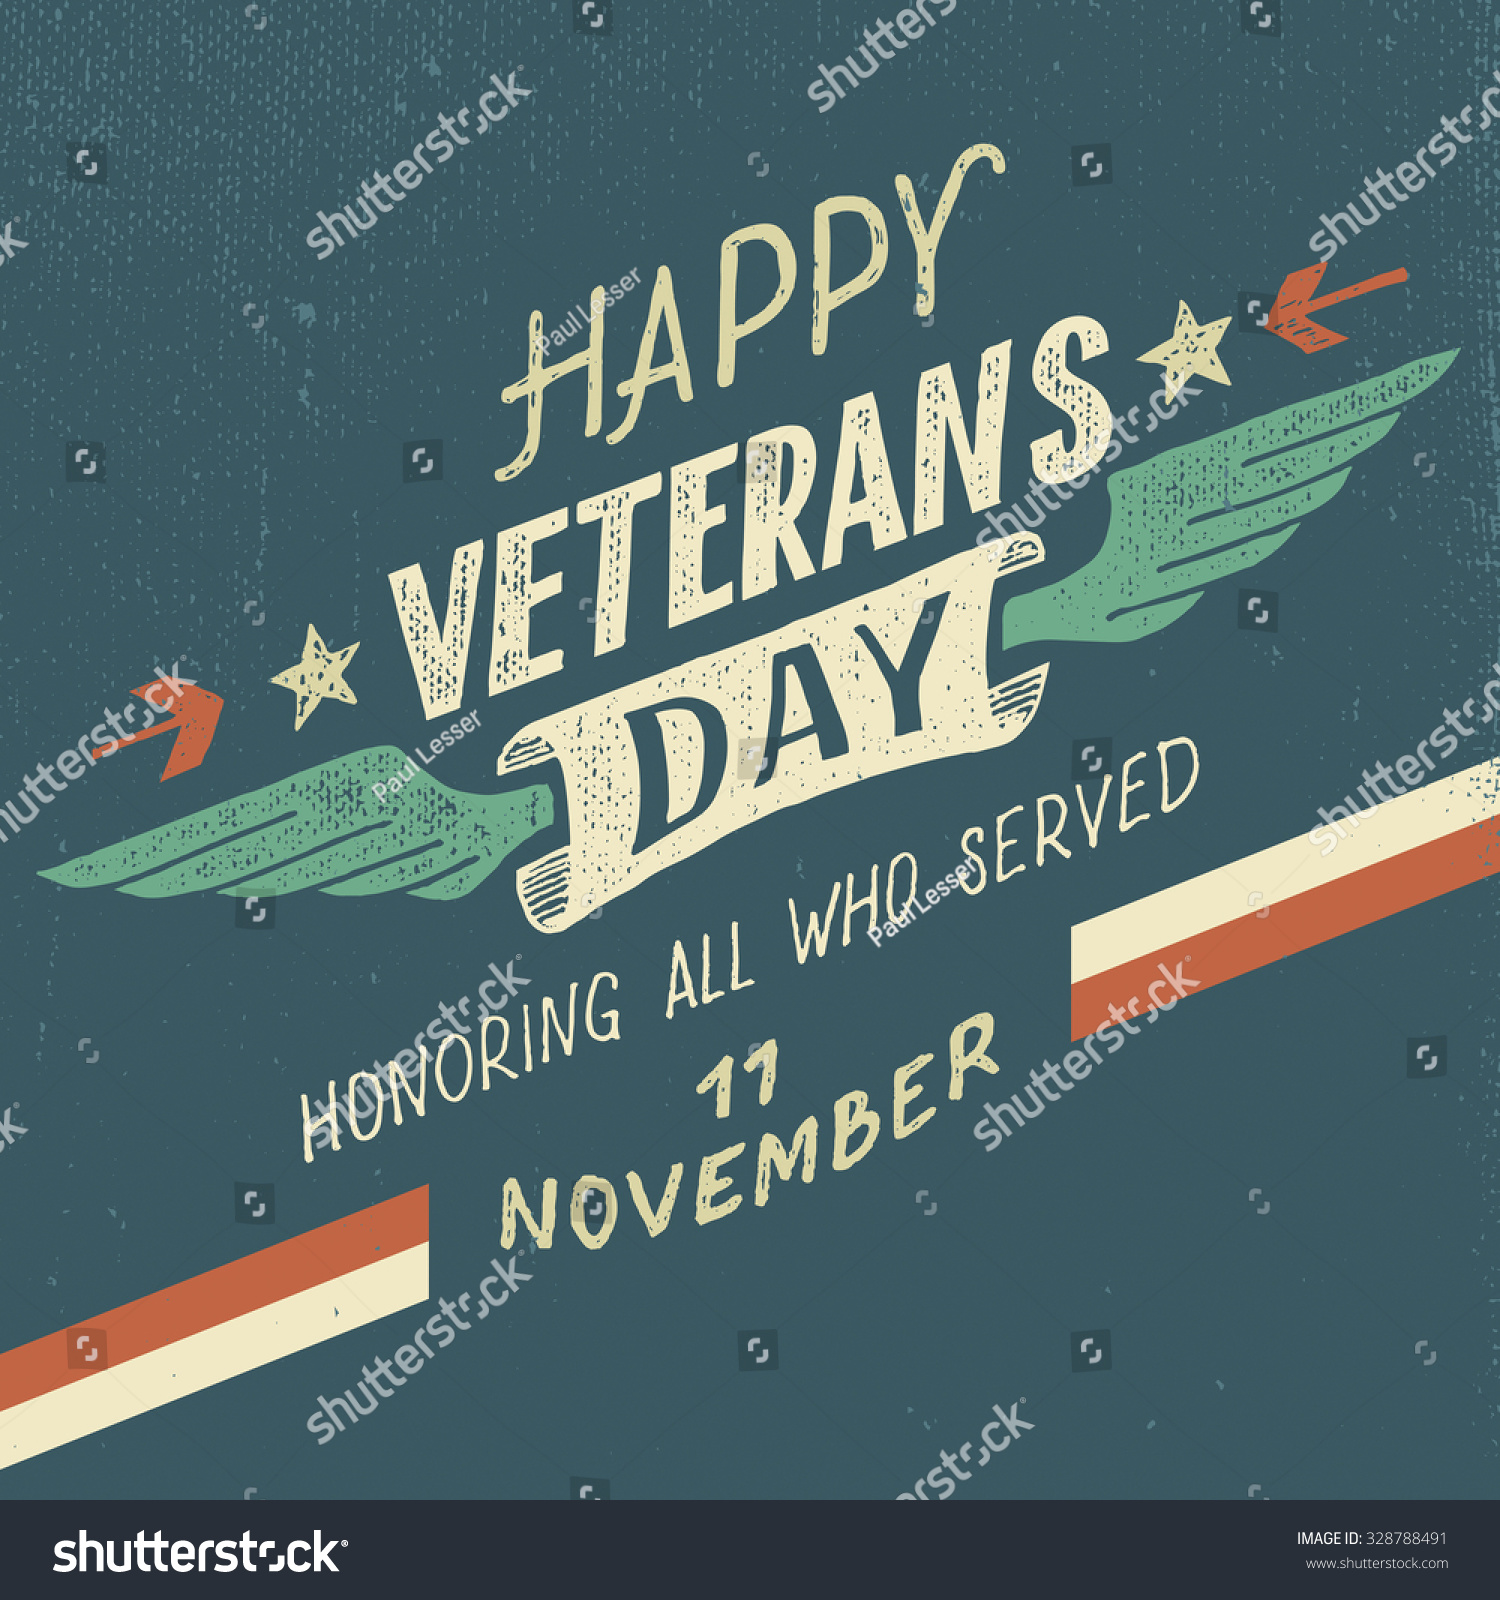 Happy veterans day greeting card handdrawn stock vector royalty happy veterans day greeting card with hand drawn typographic design in vintage style m4hsunfo